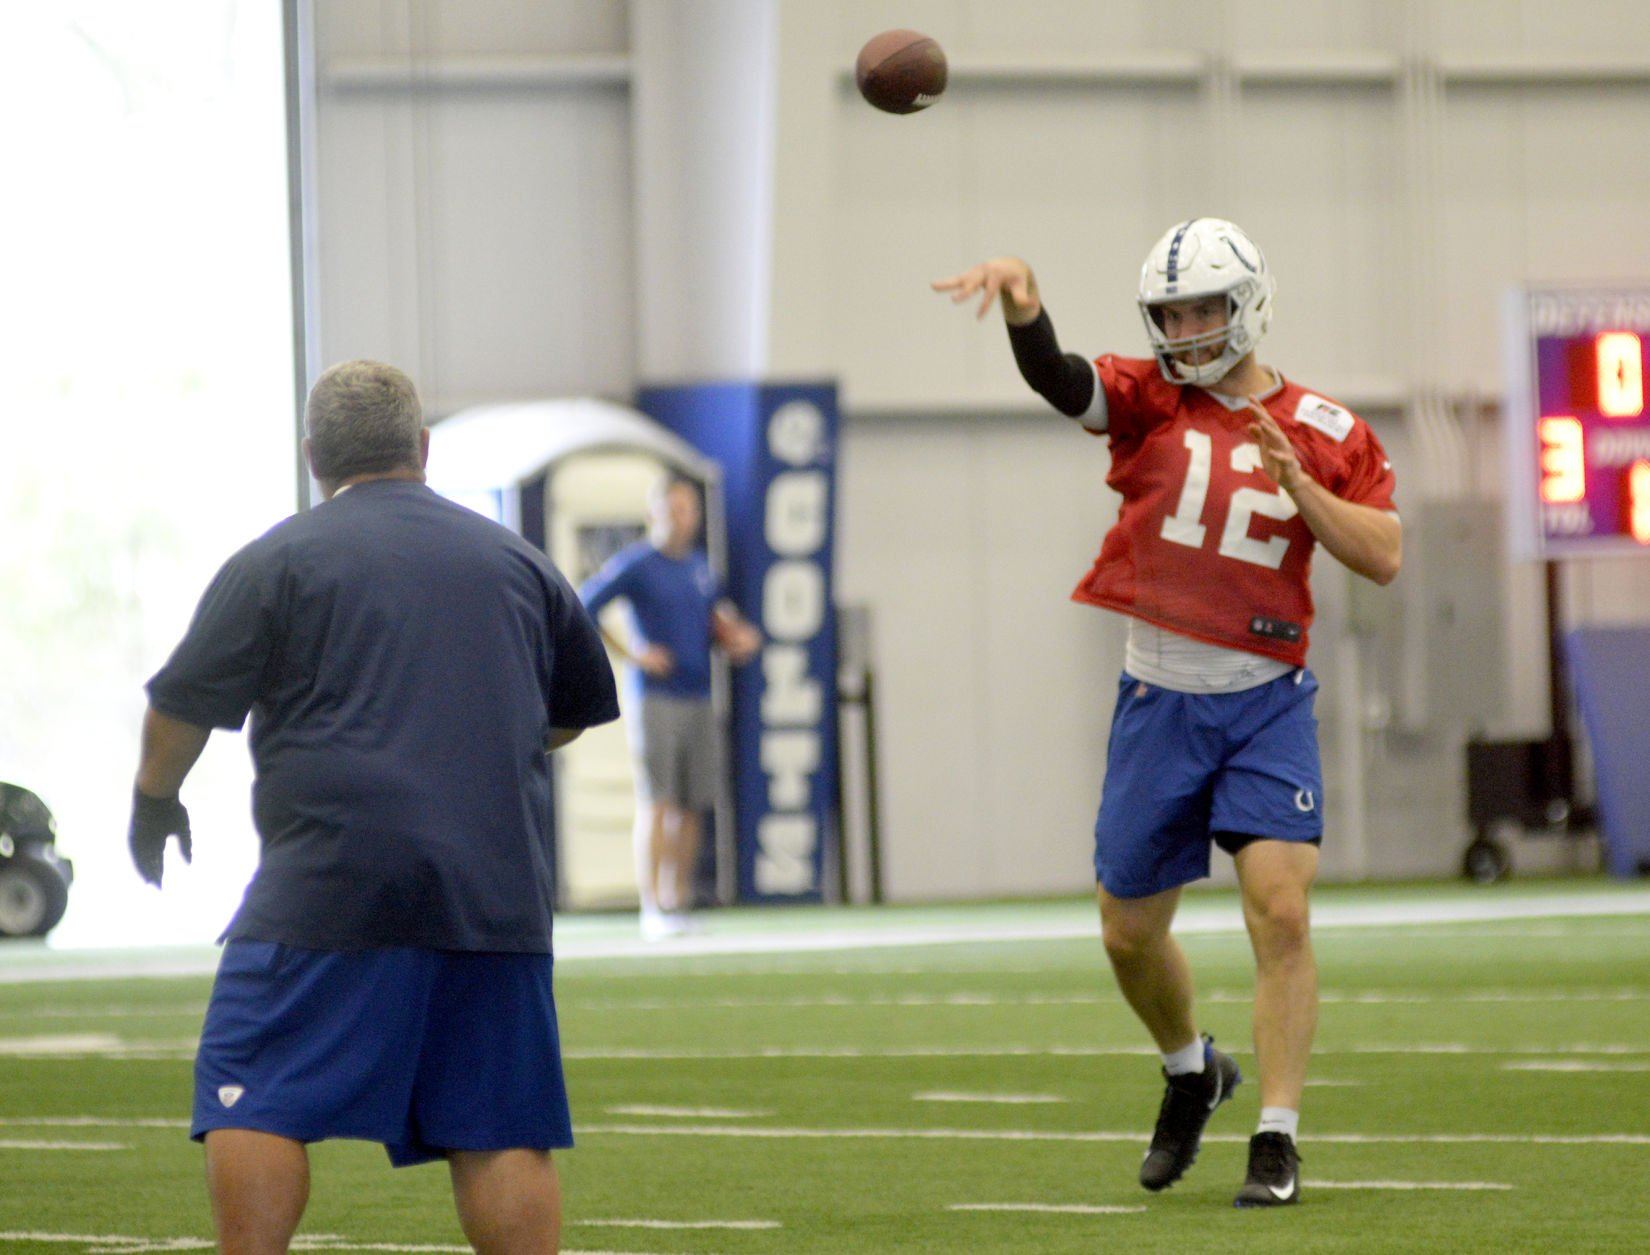 Colts QB Luck returns to practice